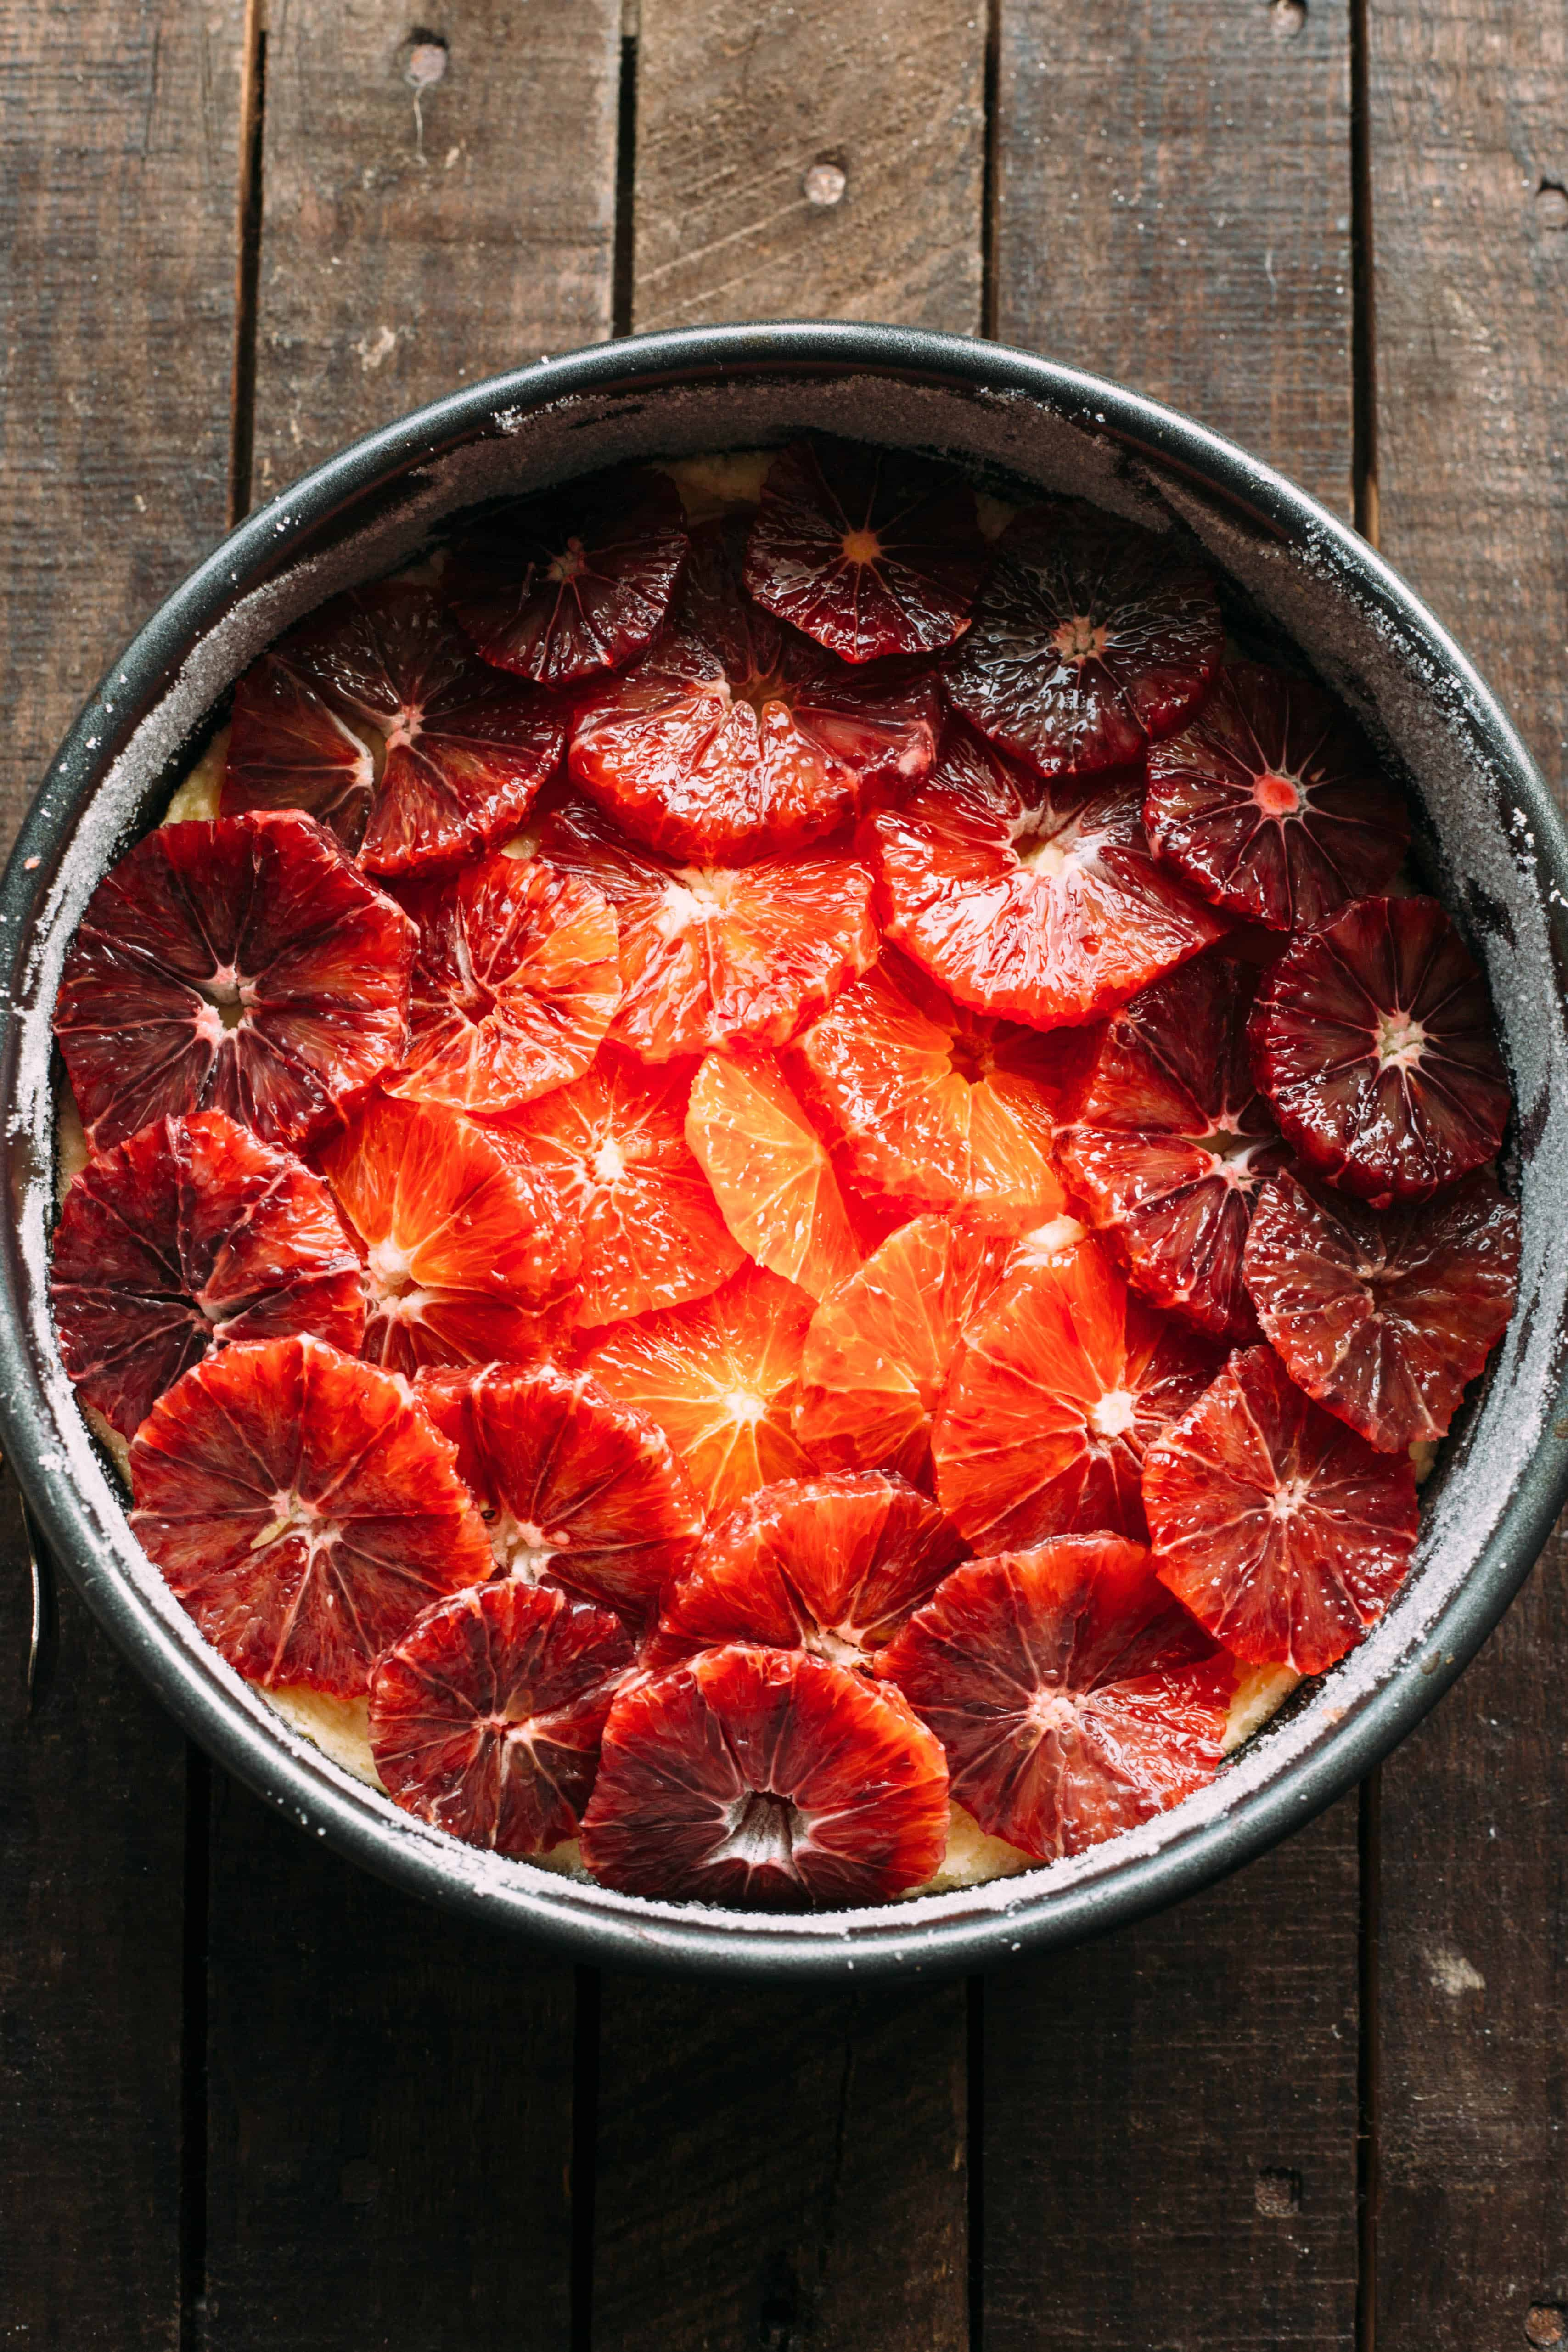 Blood orange slices layered over almond cake batter in a springform pan.